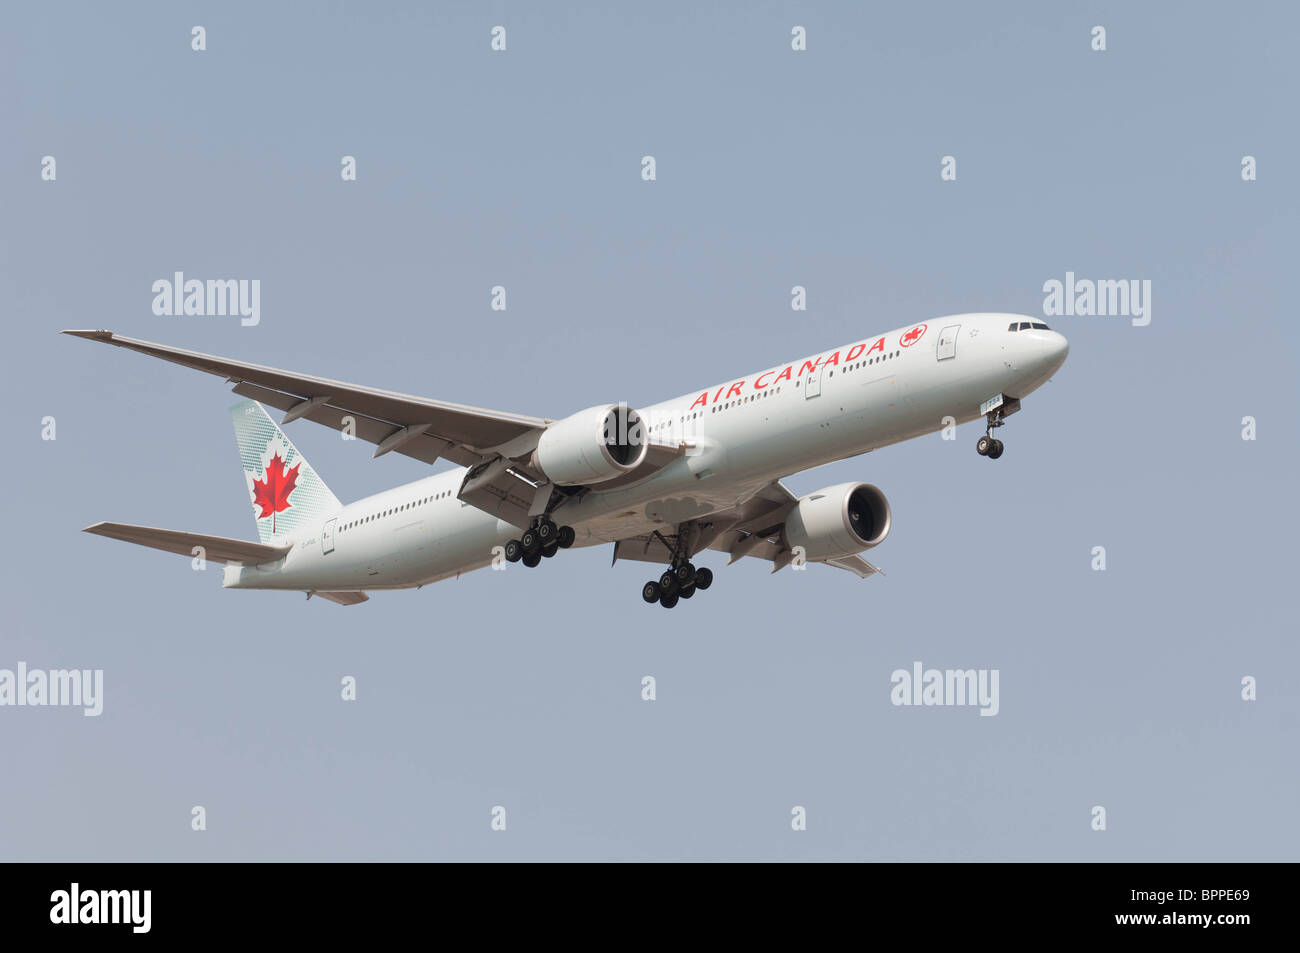 Air Canada Boeing 777-333/ER on final approach to Lester B. Pearson International Airport. - Stock Image